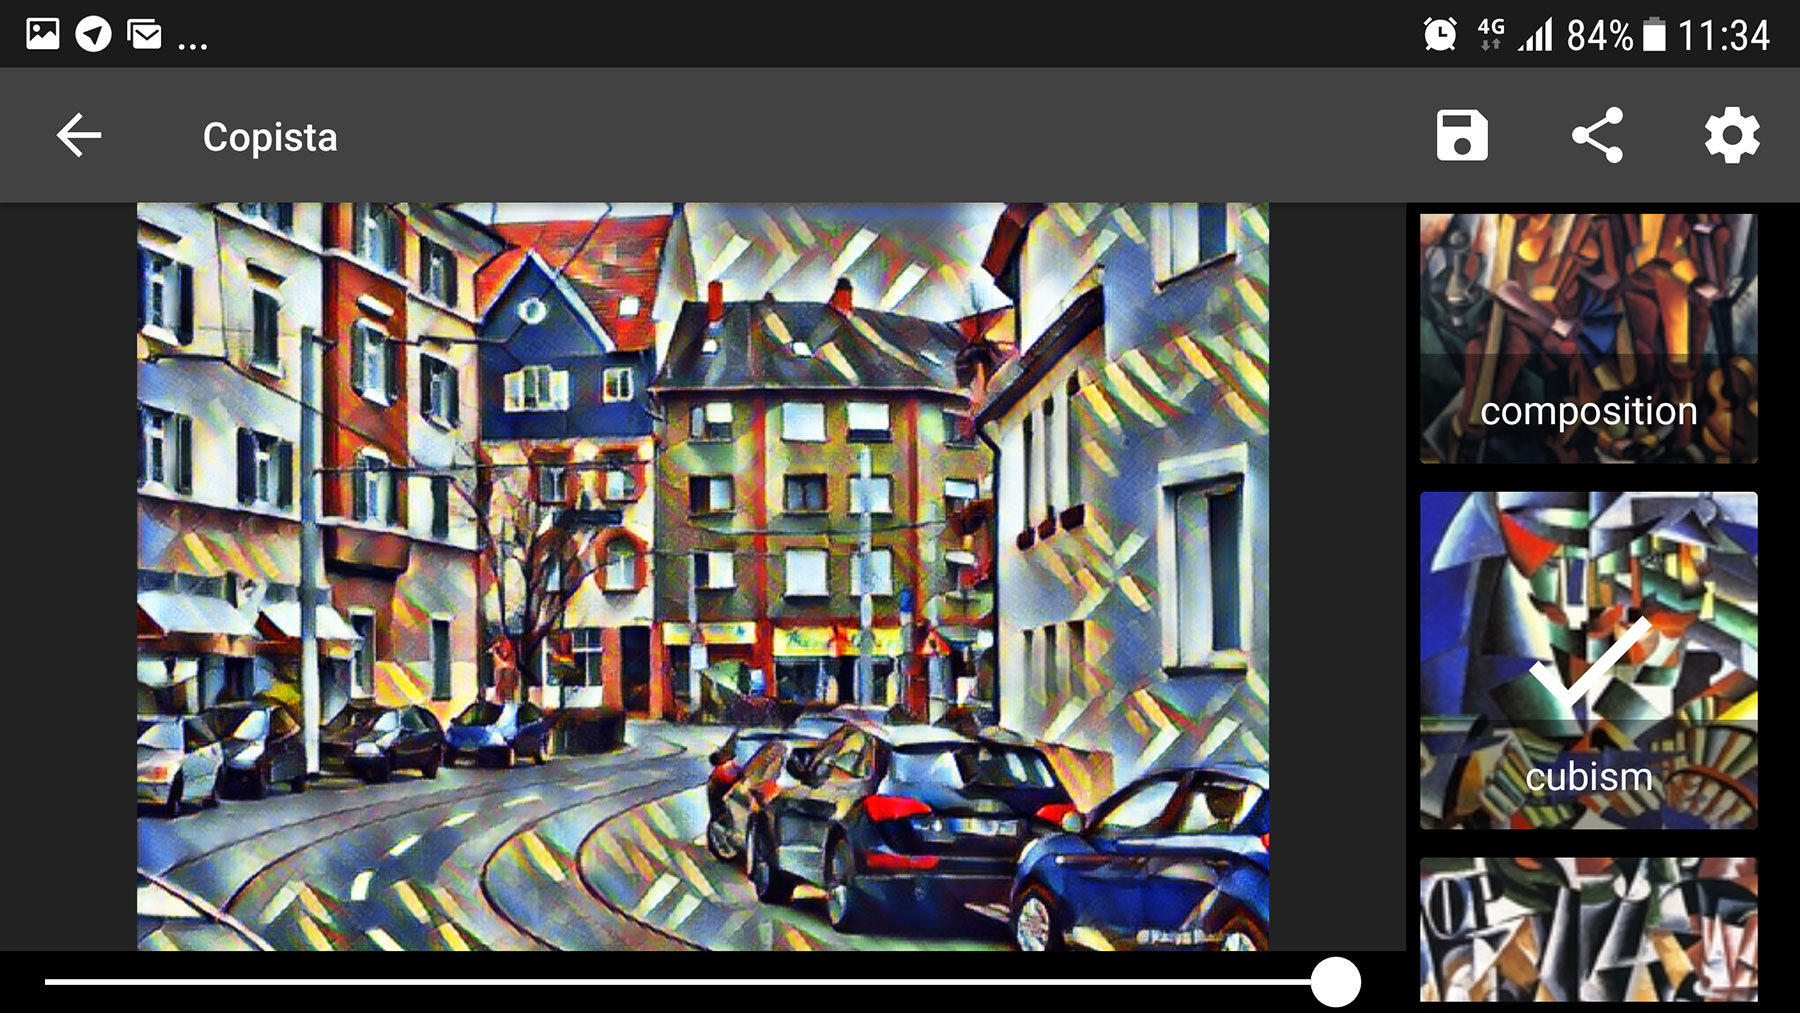 Copista - Cubism, expressionism AI photo filters